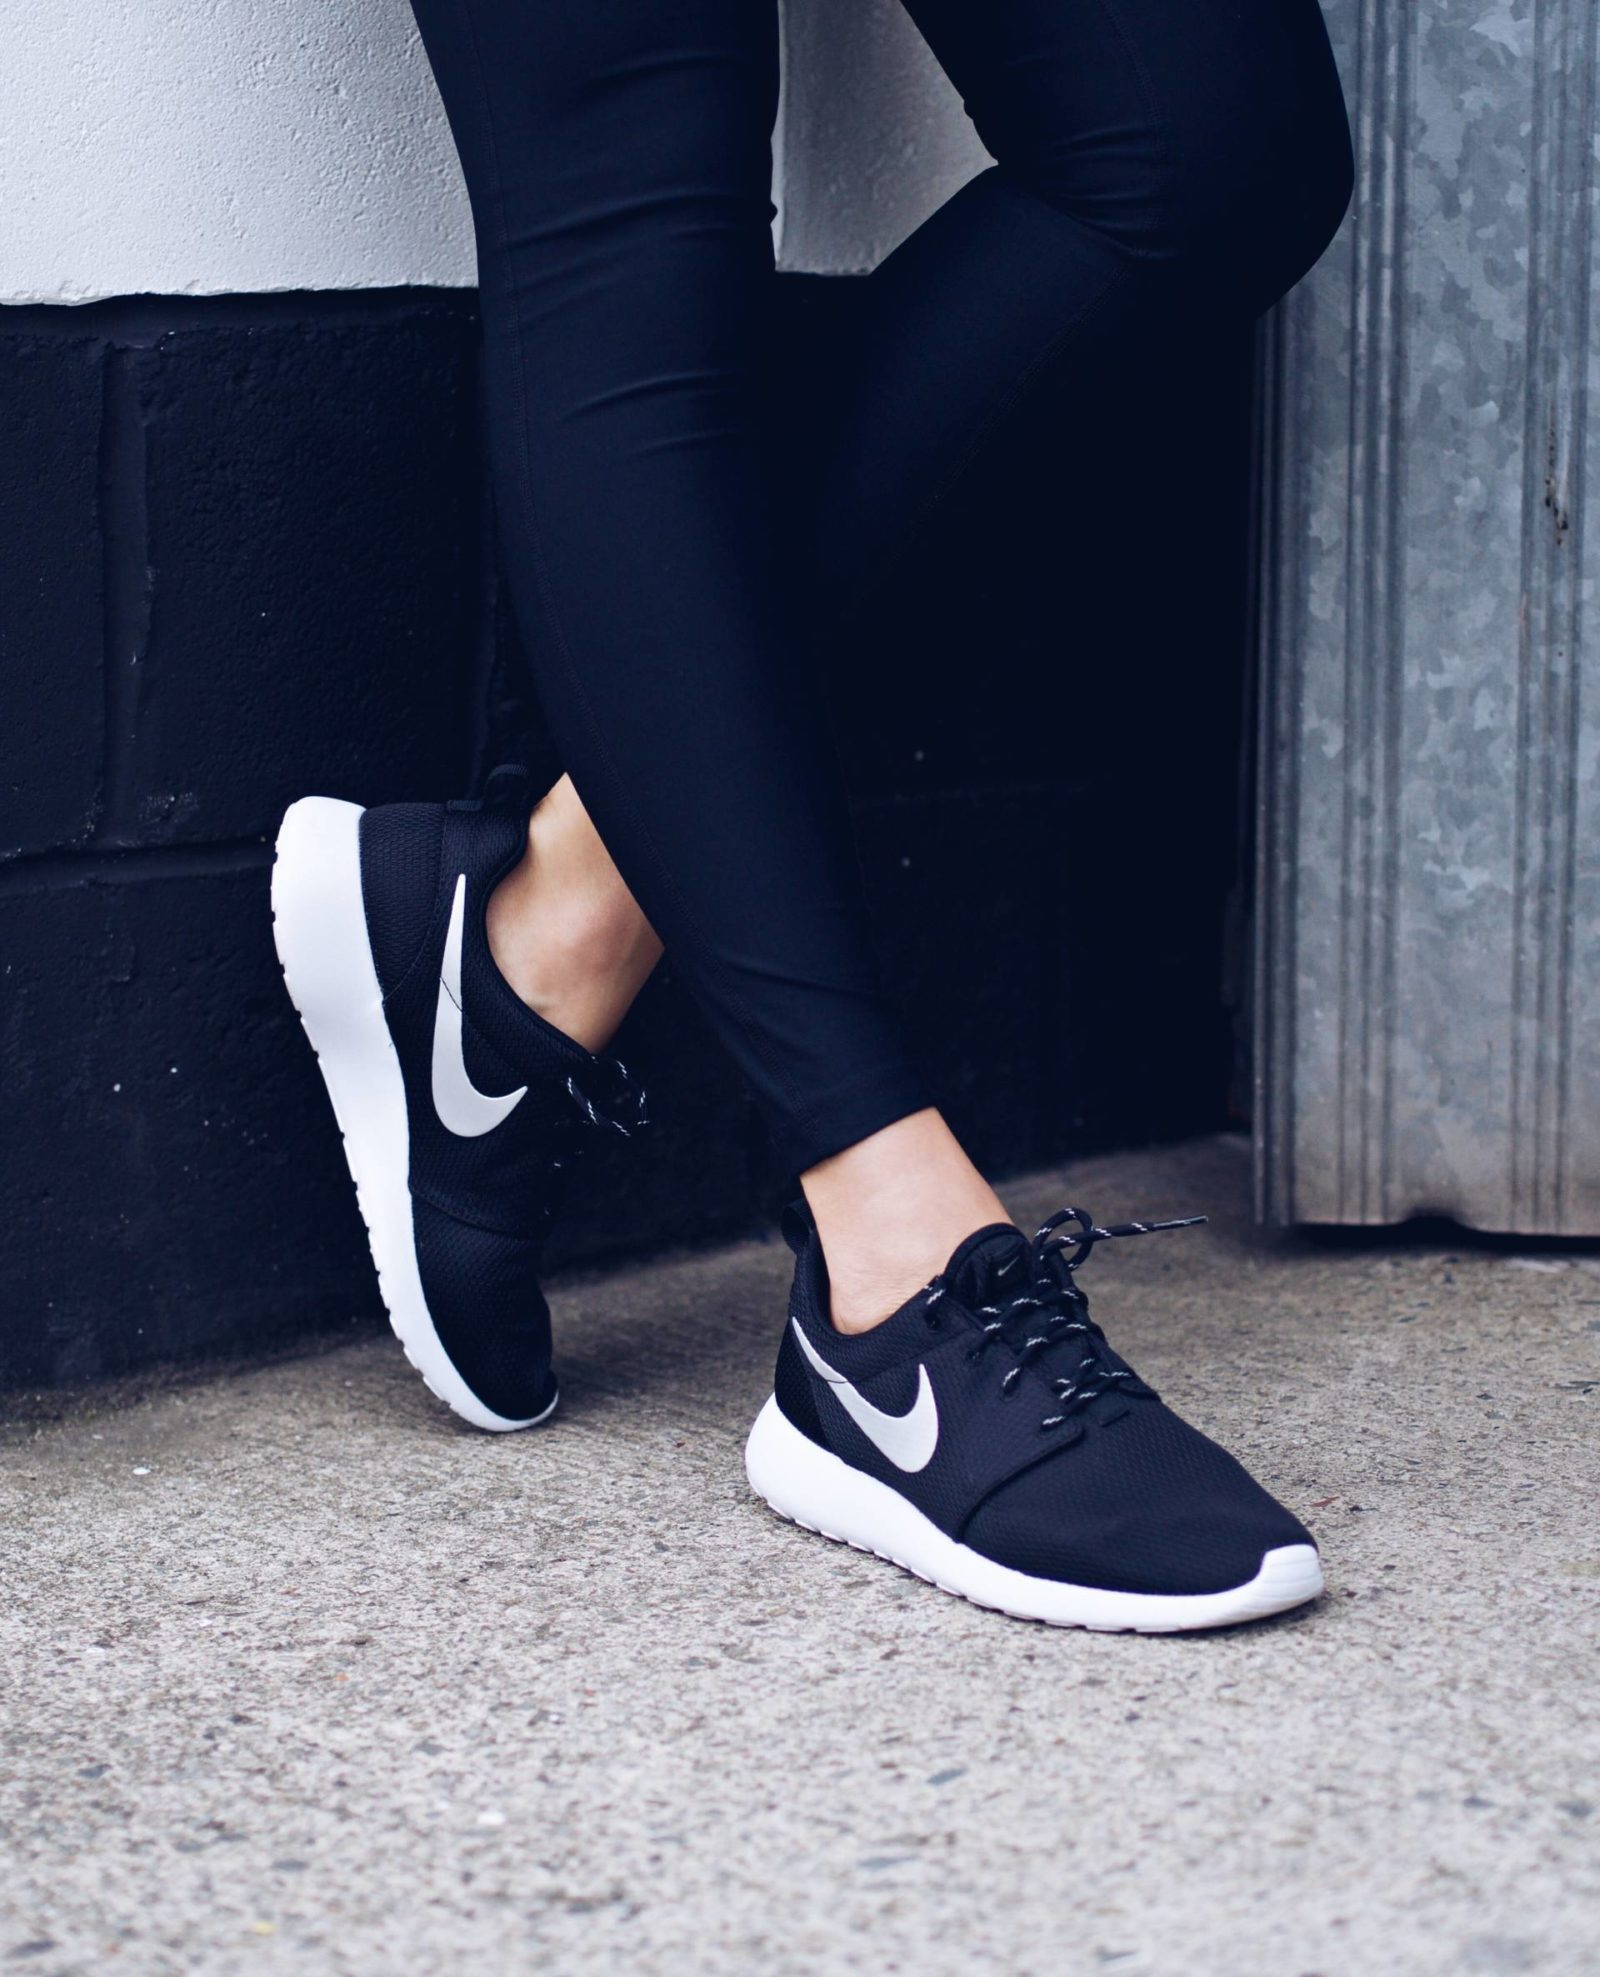 Nike Women's Sportswear styled by UK Fashion Blogger LAFOTKA Label